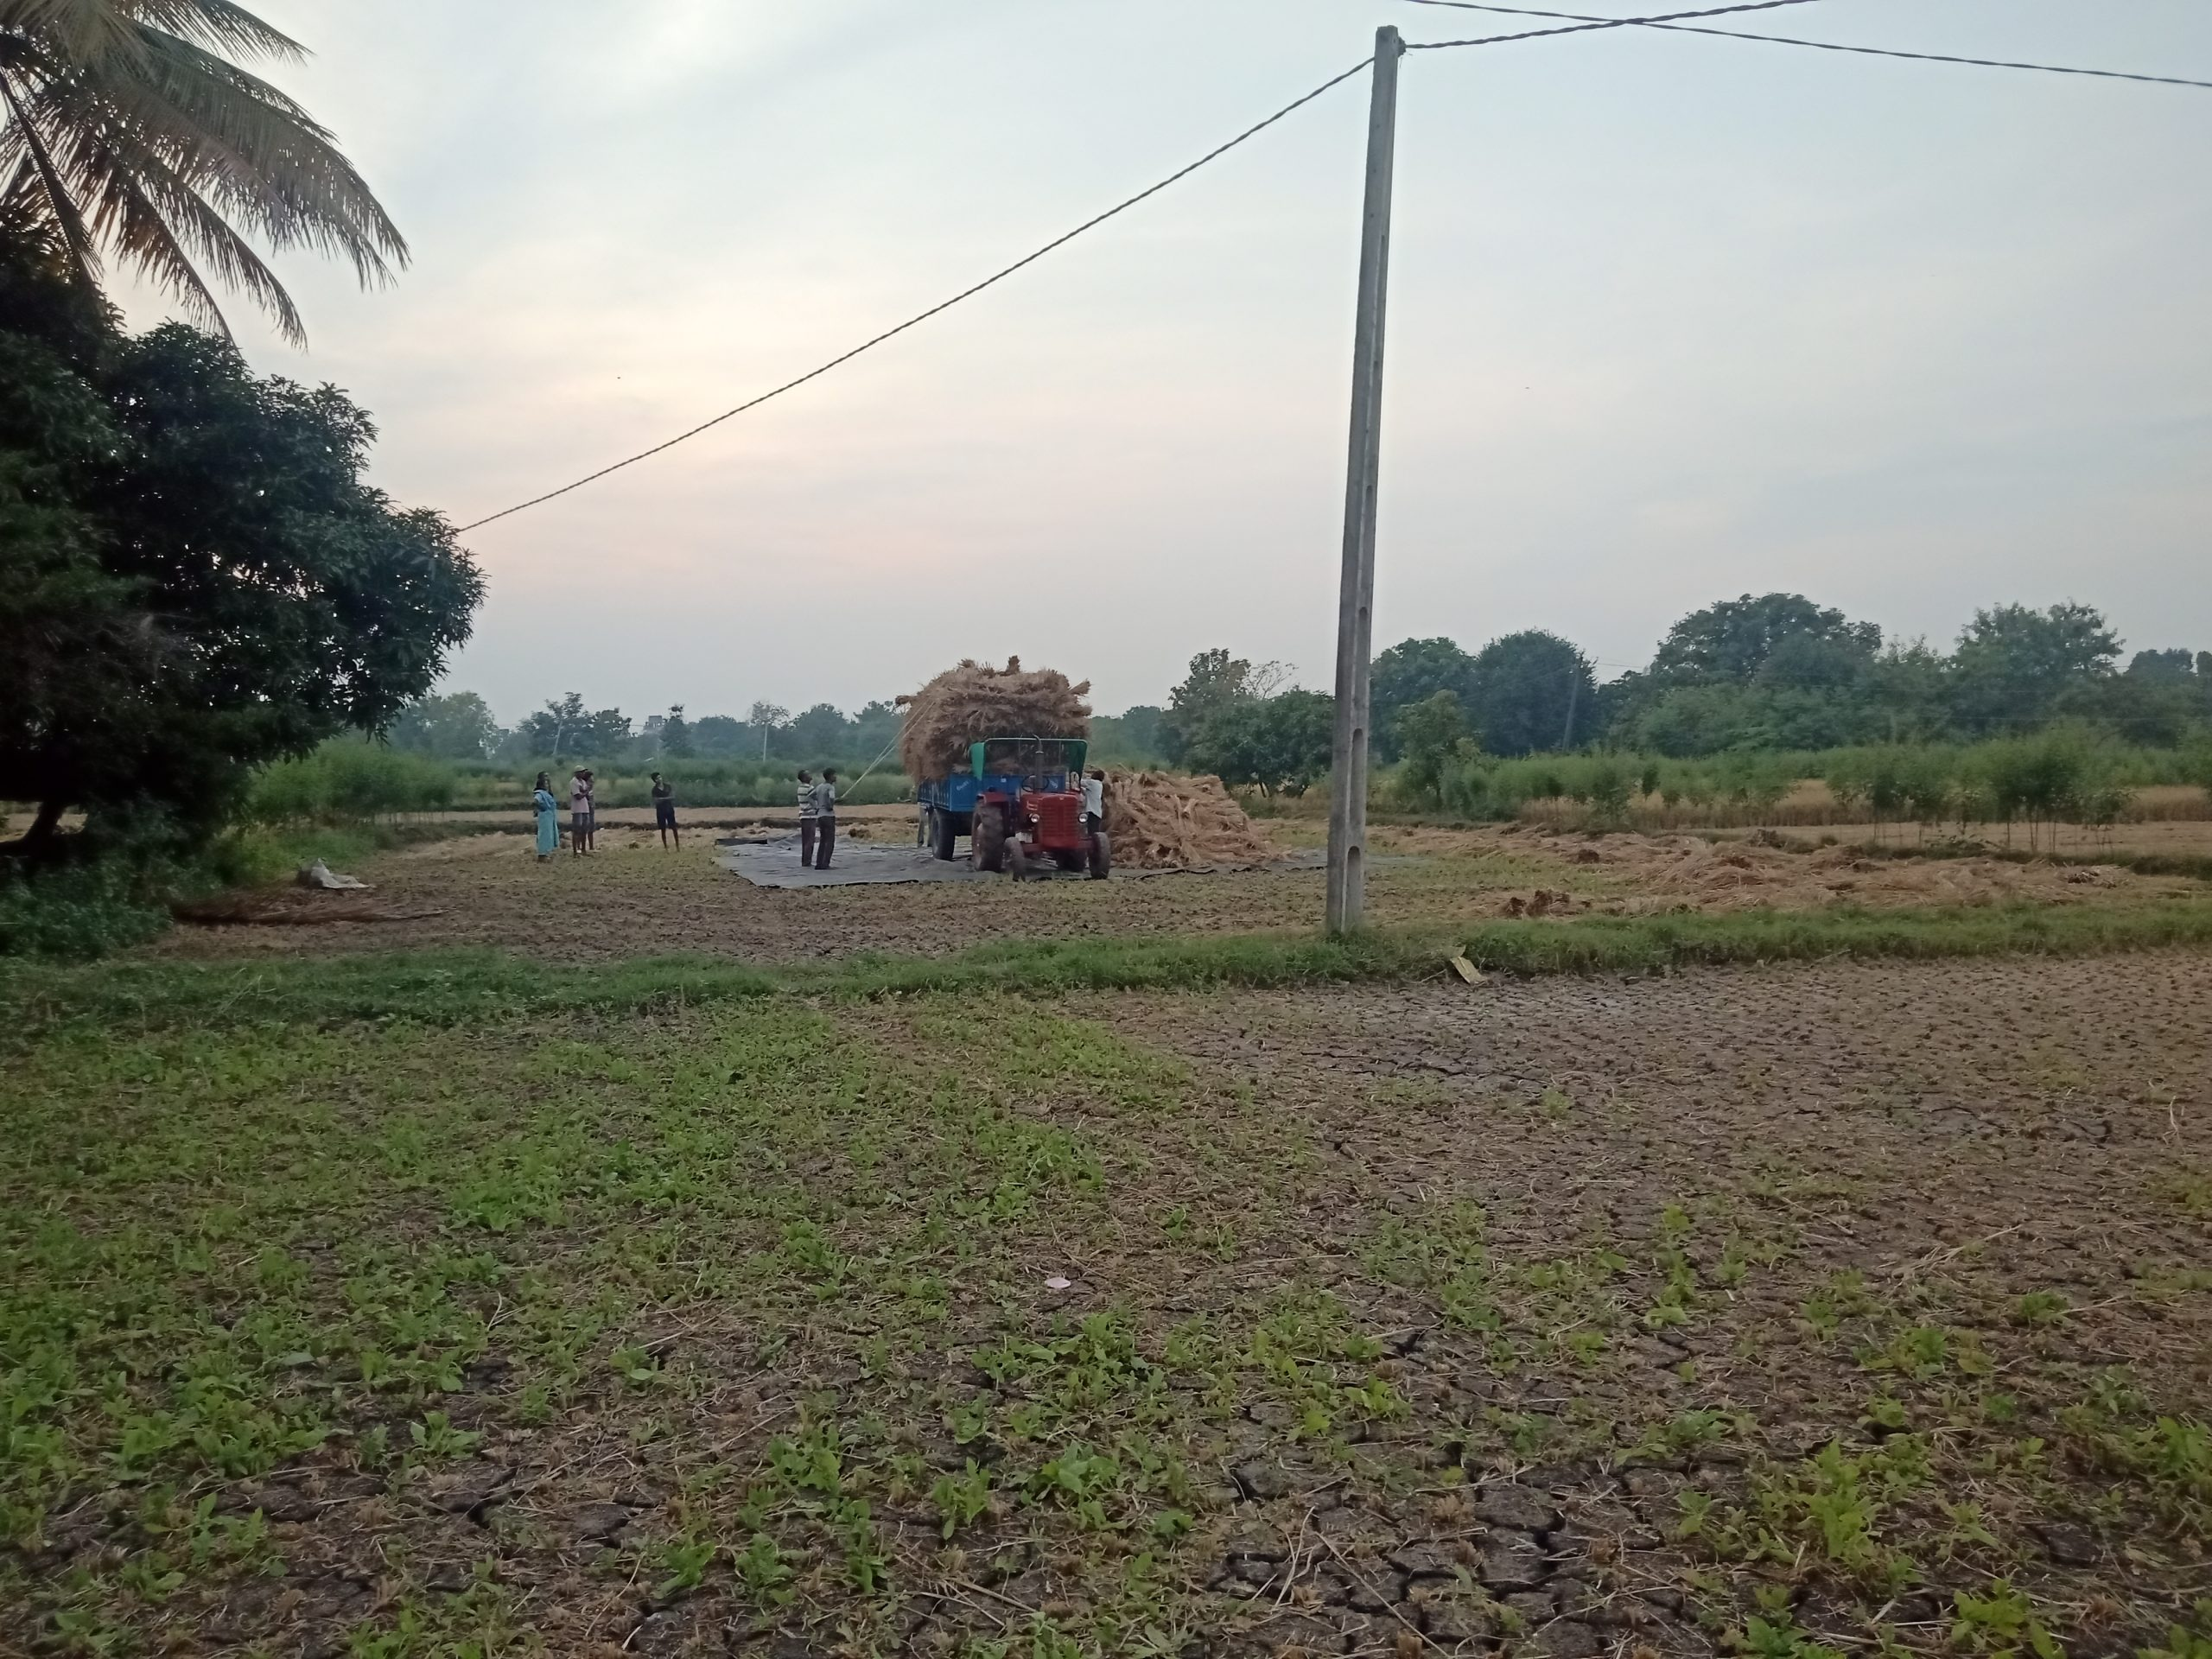 Farmers with a tractor